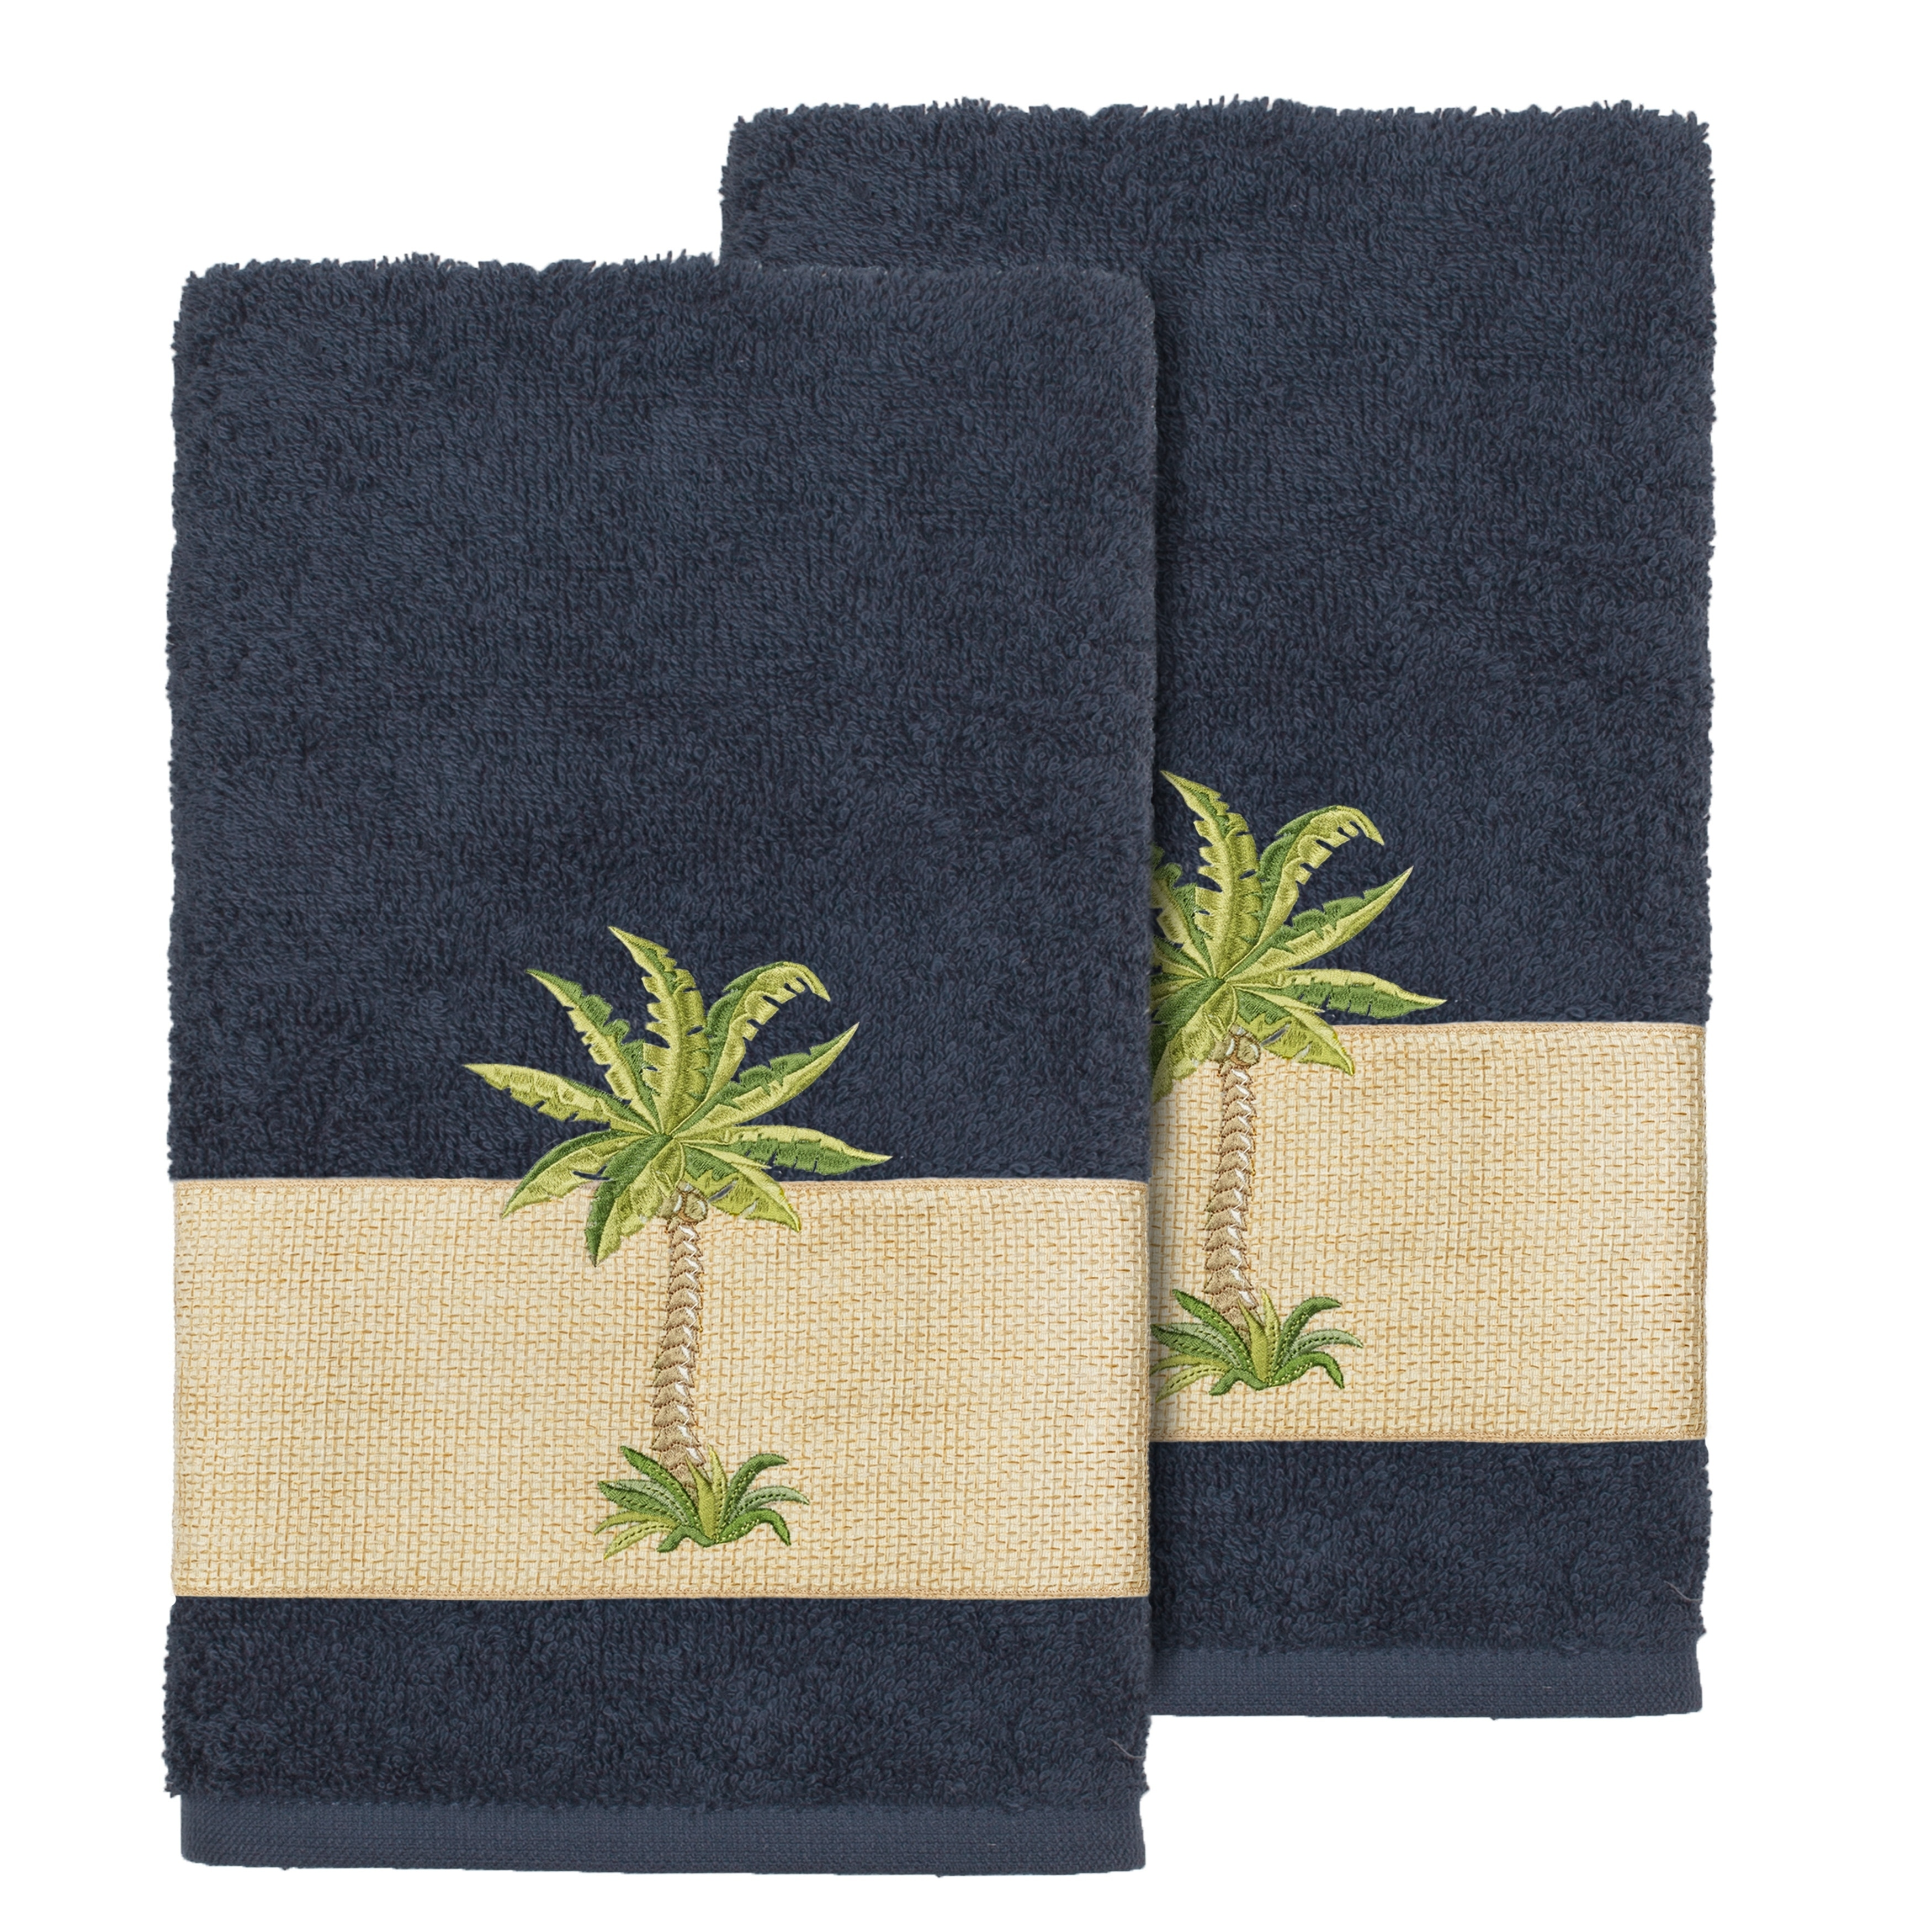 Authentic Hotel And Spa Turkish Cotton Palm Tree Embroidered Midnight Blue Hand Towels Set Of 2